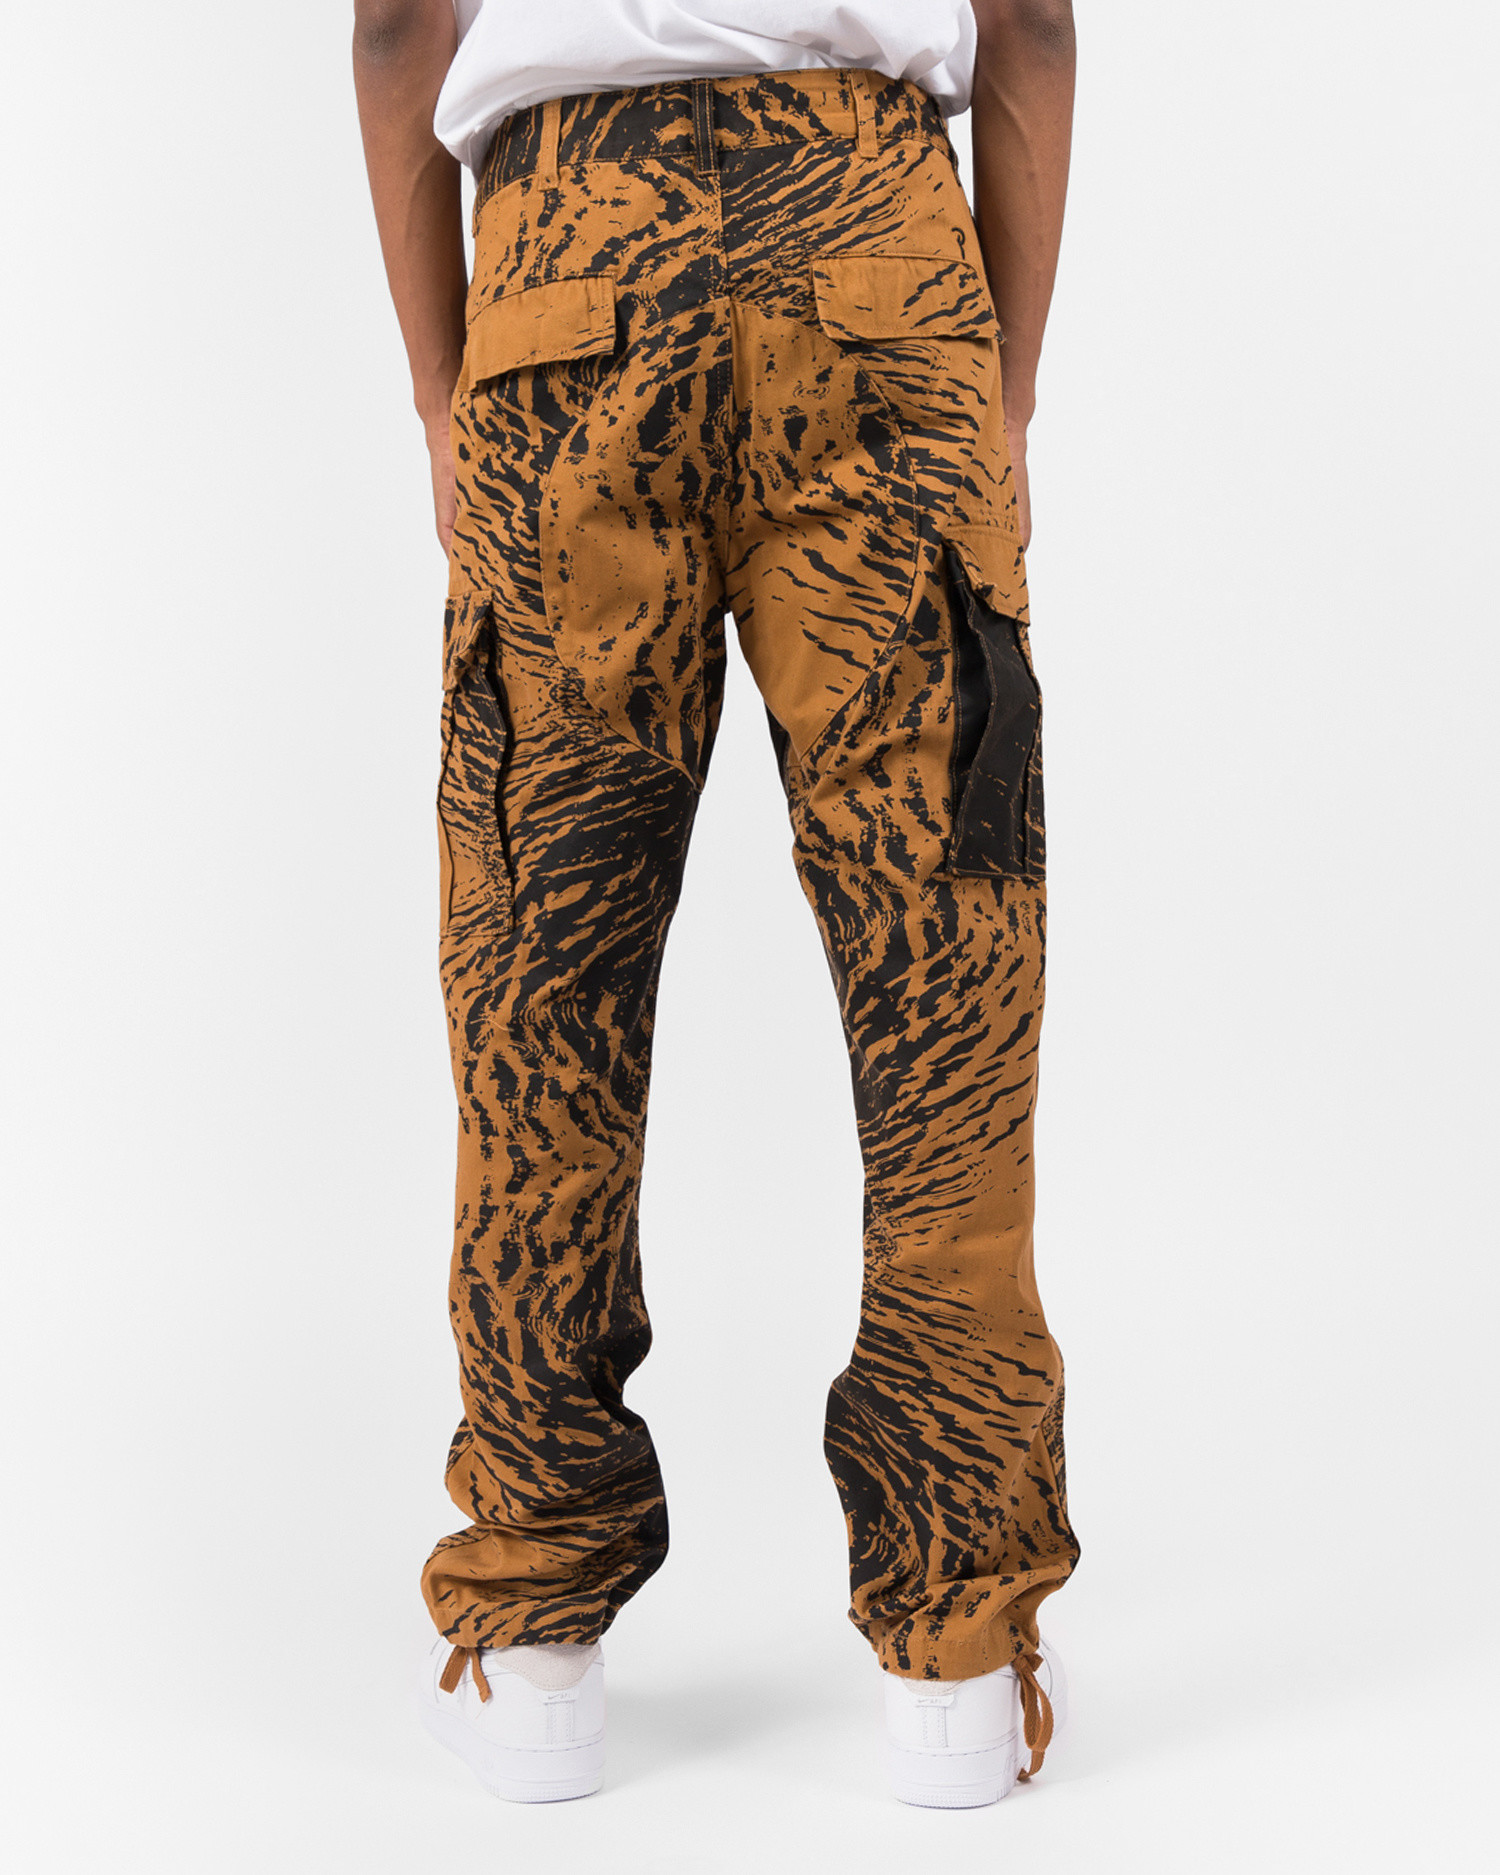 Patta Water Camo Cargo Pants Brown Sugar/Black